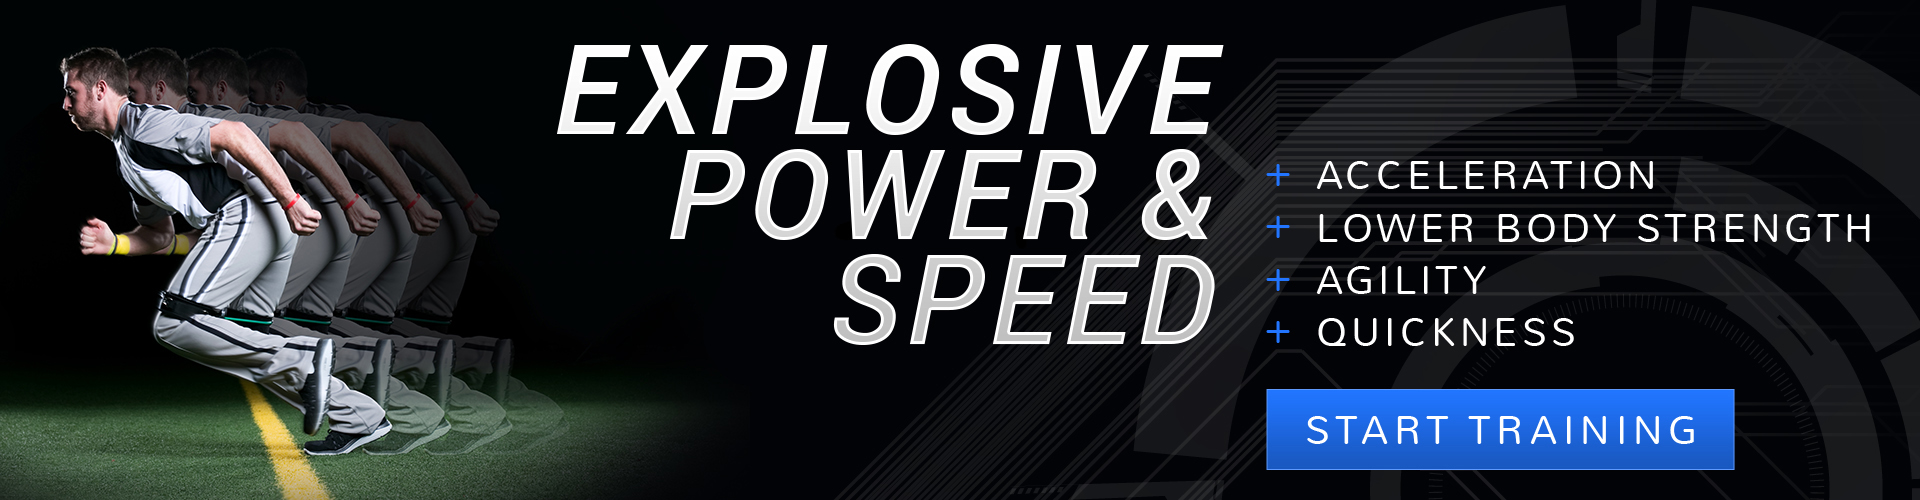 Get explosive power and speed for all sports; acceleration, lower body strength, agility, quickness, off-season training.